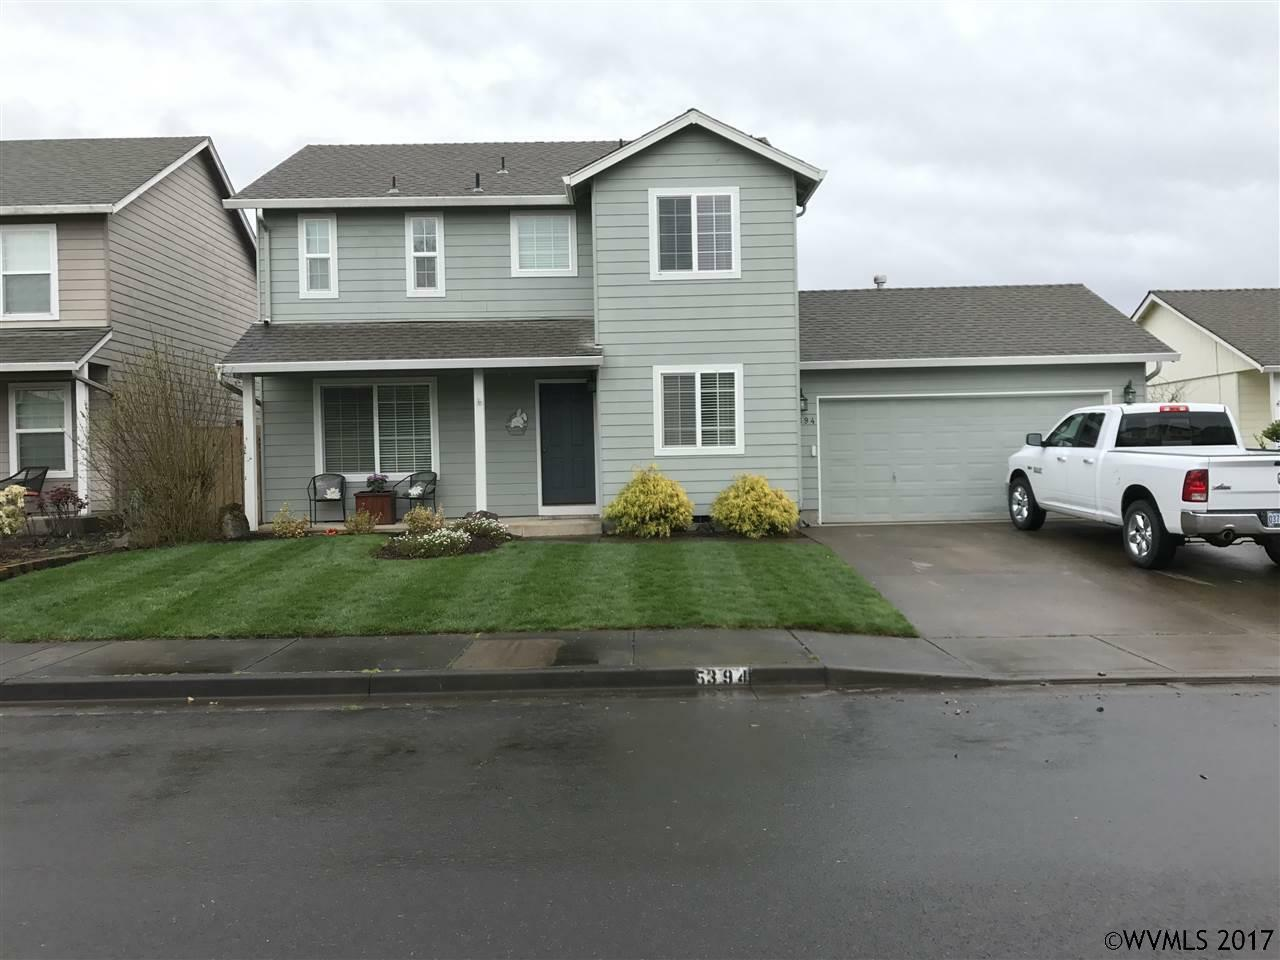 5394 Lakeport St, Keizer, OR - USA (photo 1)